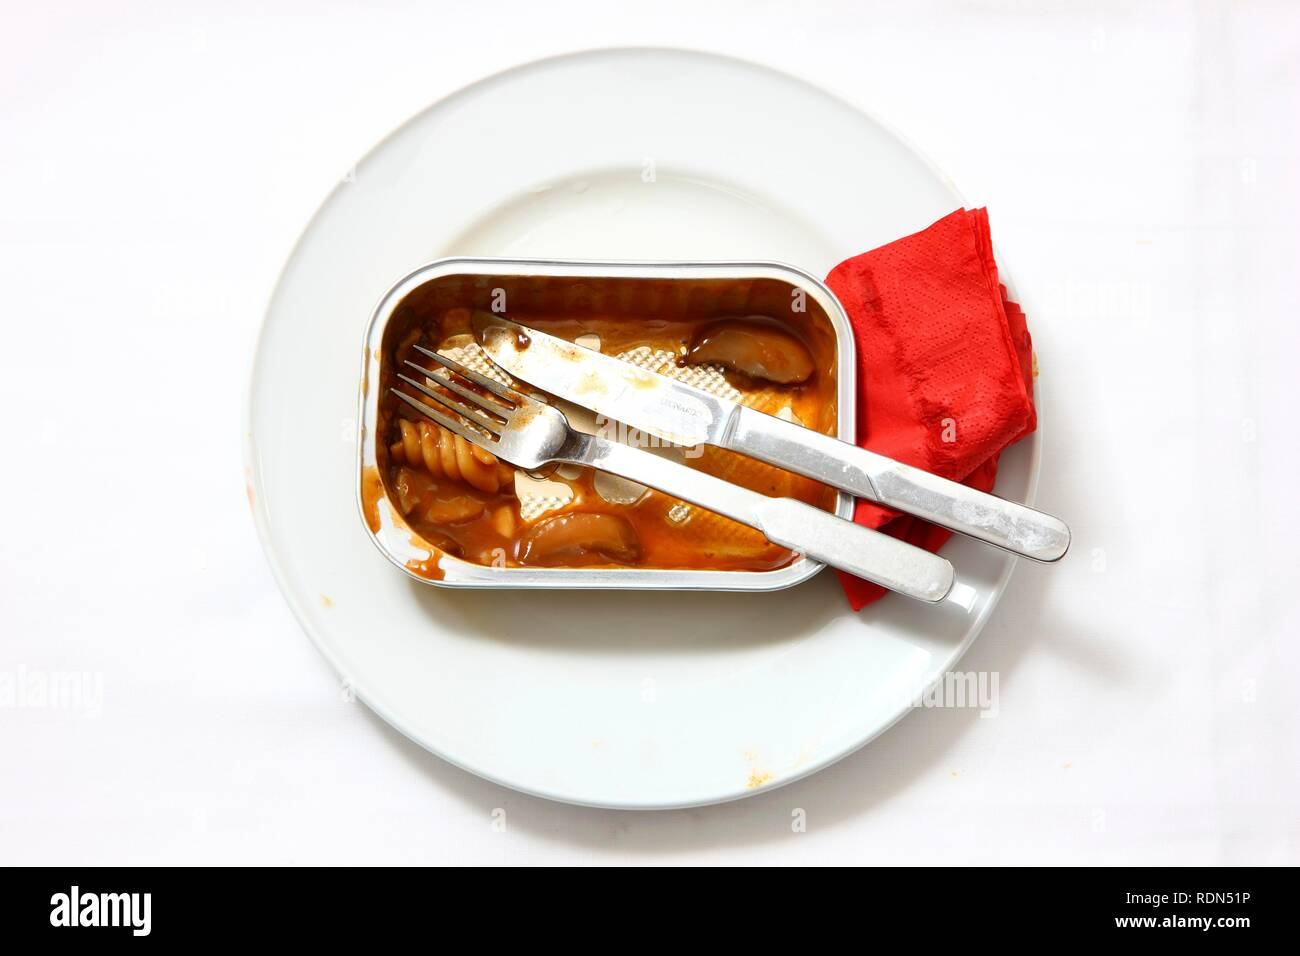 Remains of a pre-prepared meal after being eaten, served on a plate, in the original packaging Stock Photo